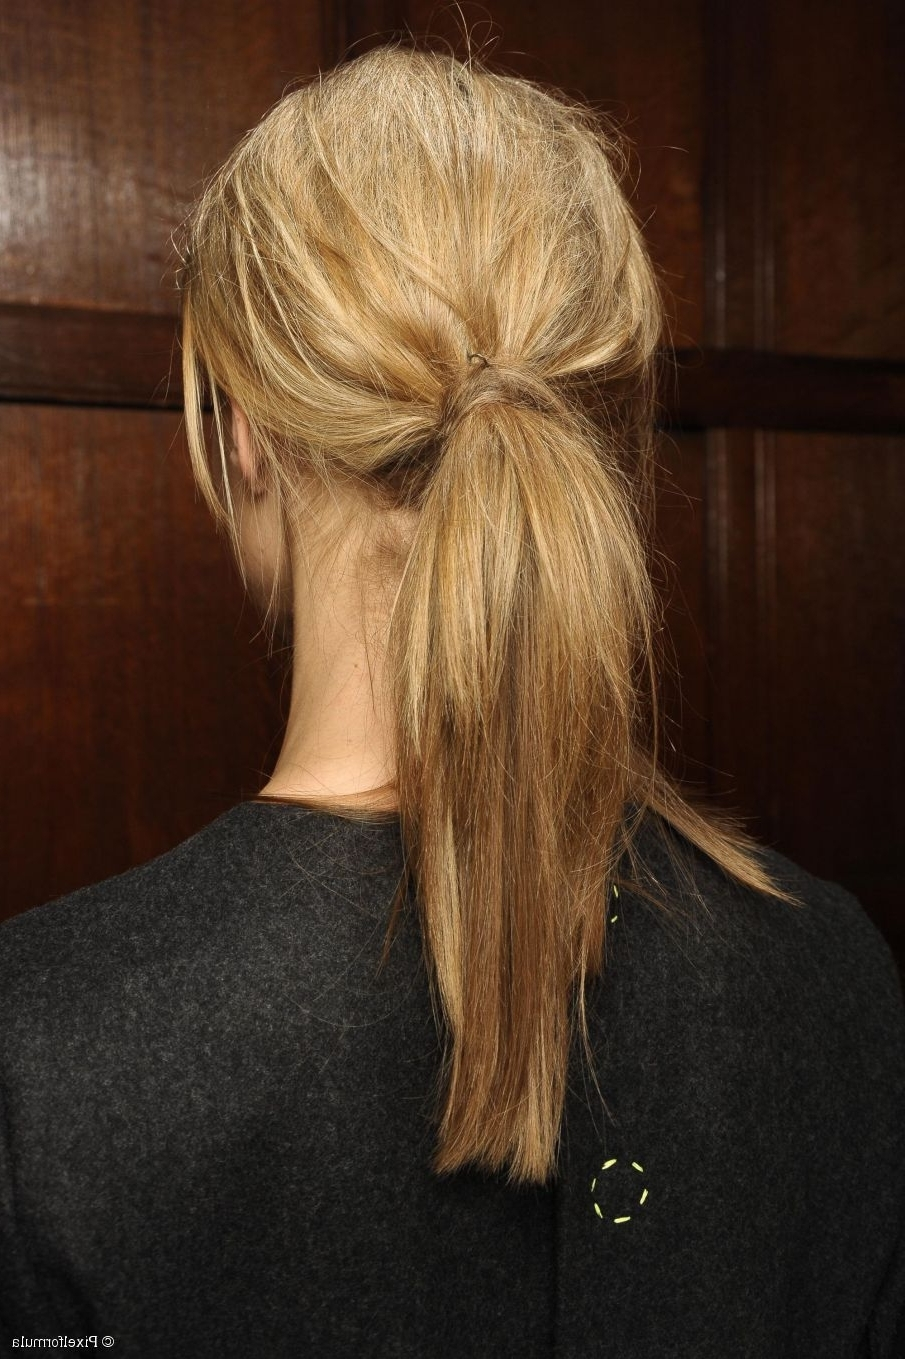 Recent Textured Ponytail Hairstyles Within New Ponytail Hairstyles To Try & How To Get Them (View 15 of 20)